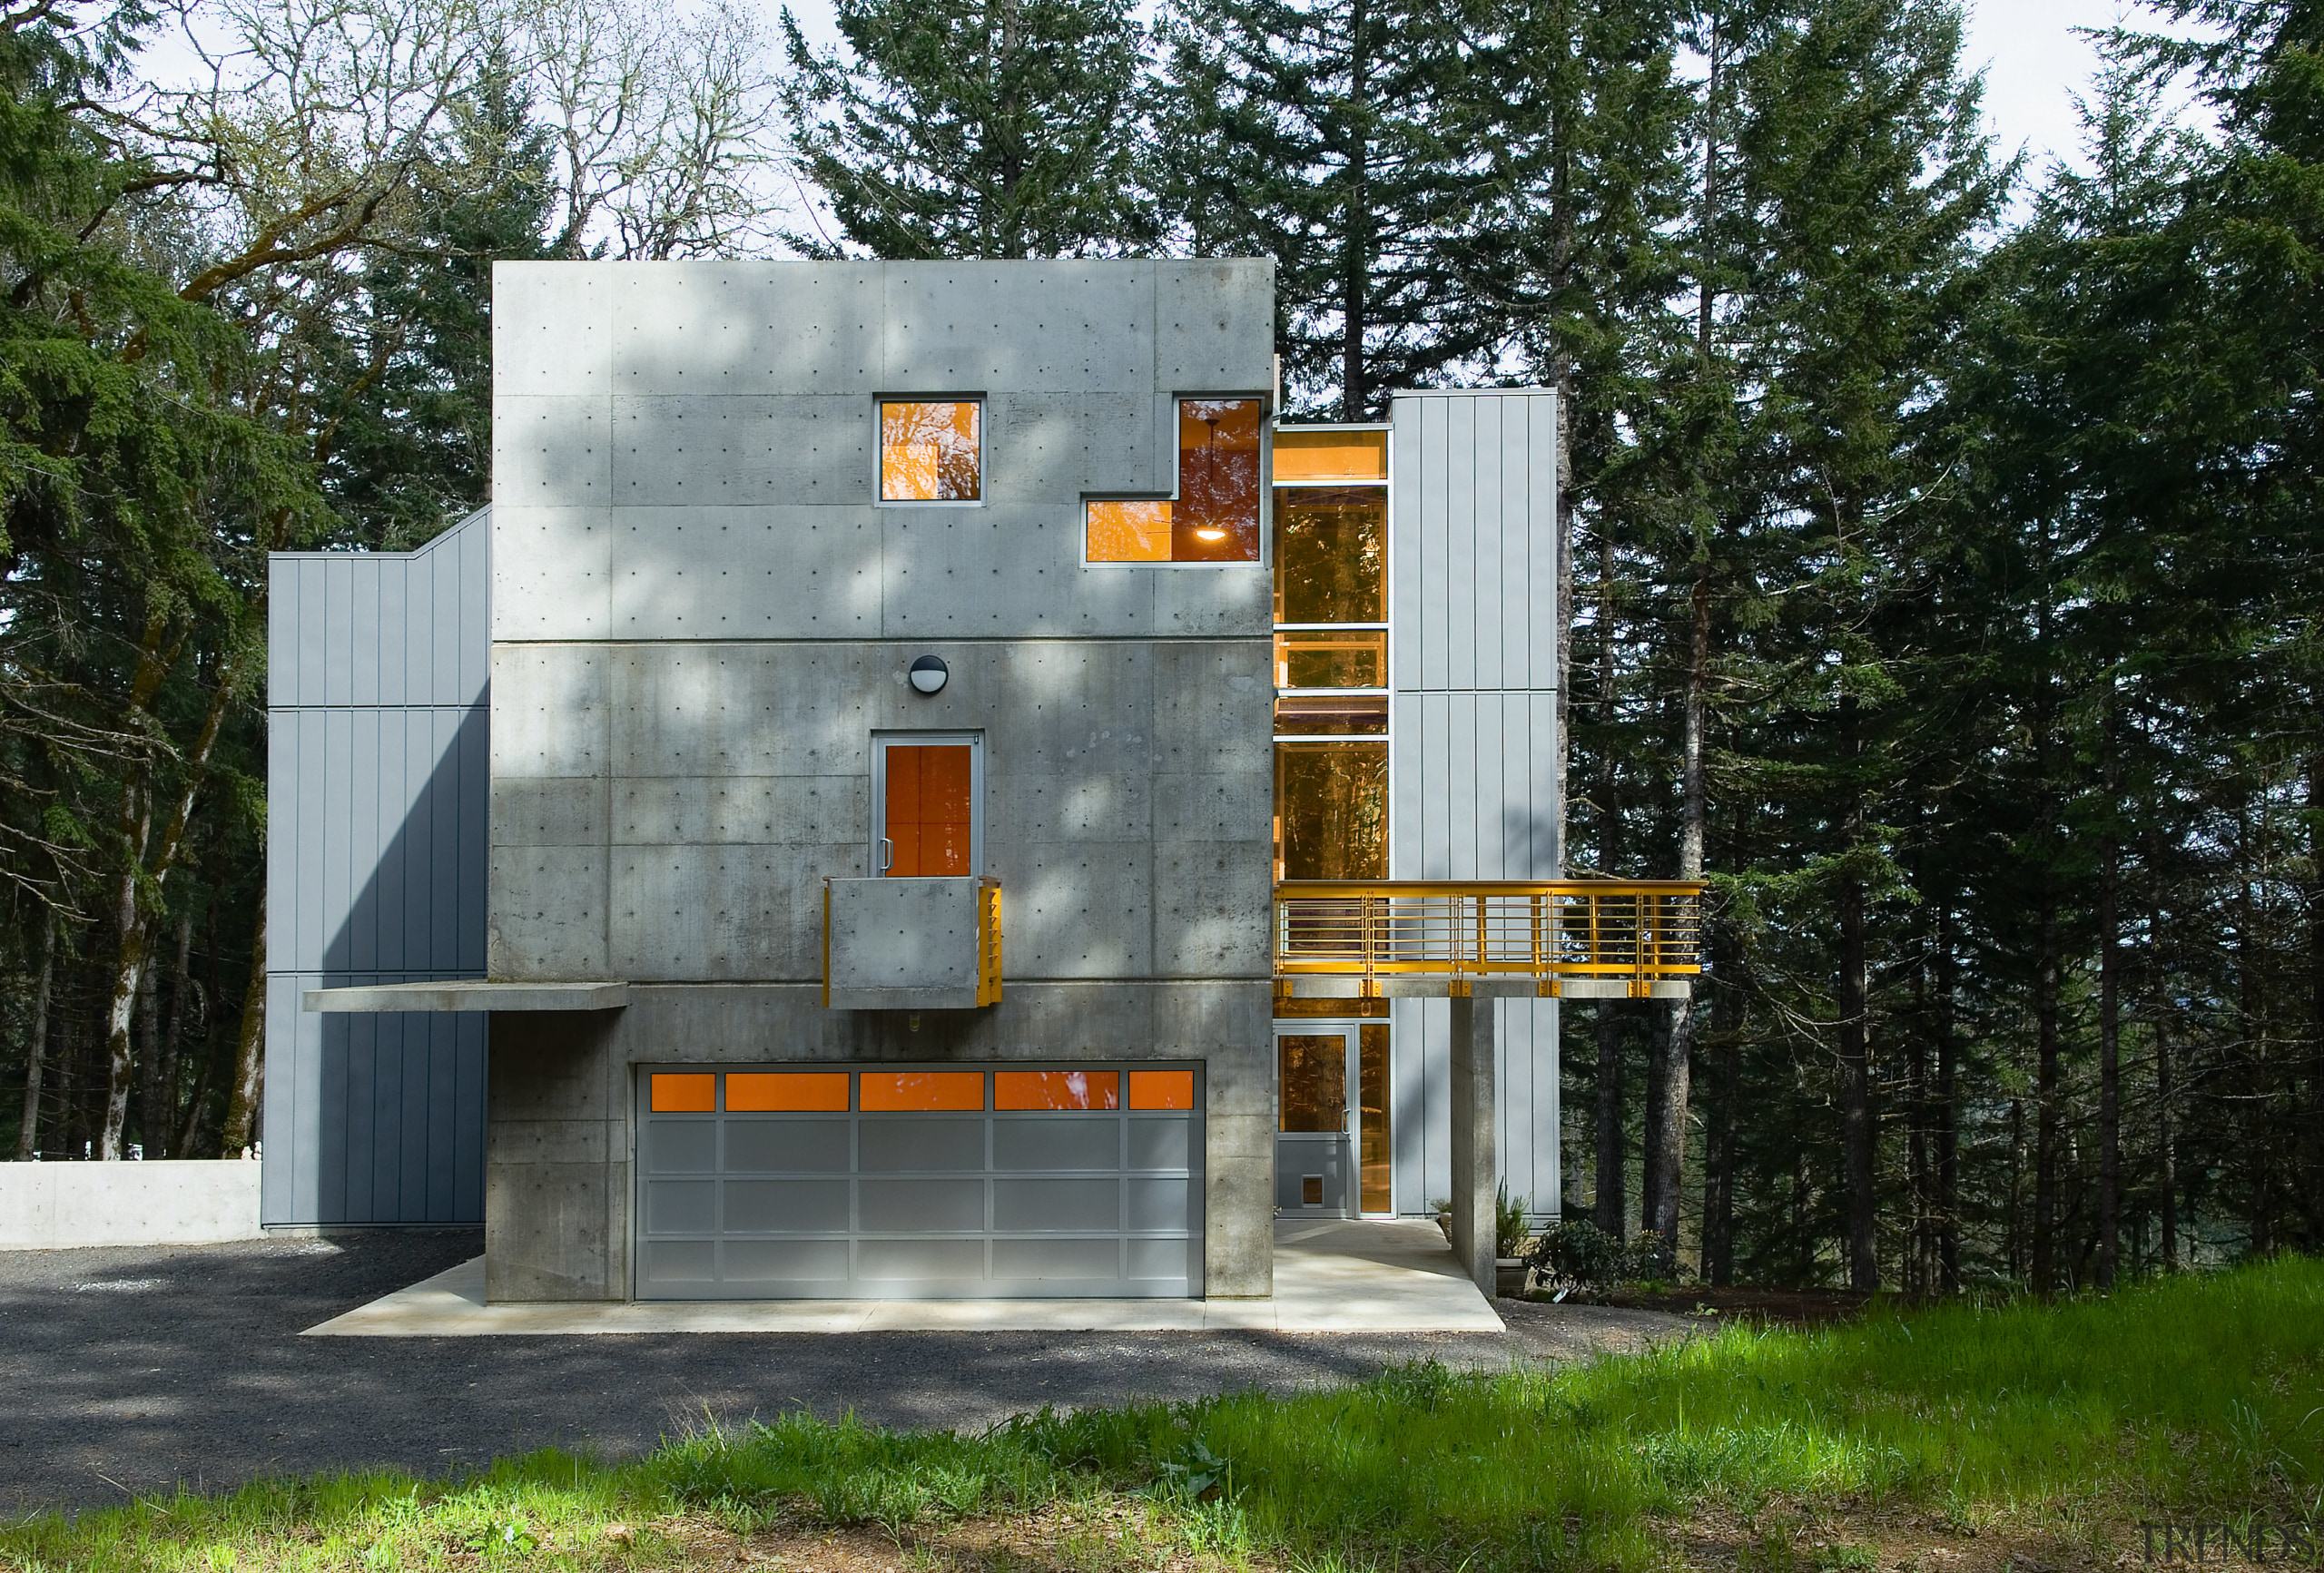 An exterior view of this David gray architecturally architecture, building, facade, home, house, gray, black